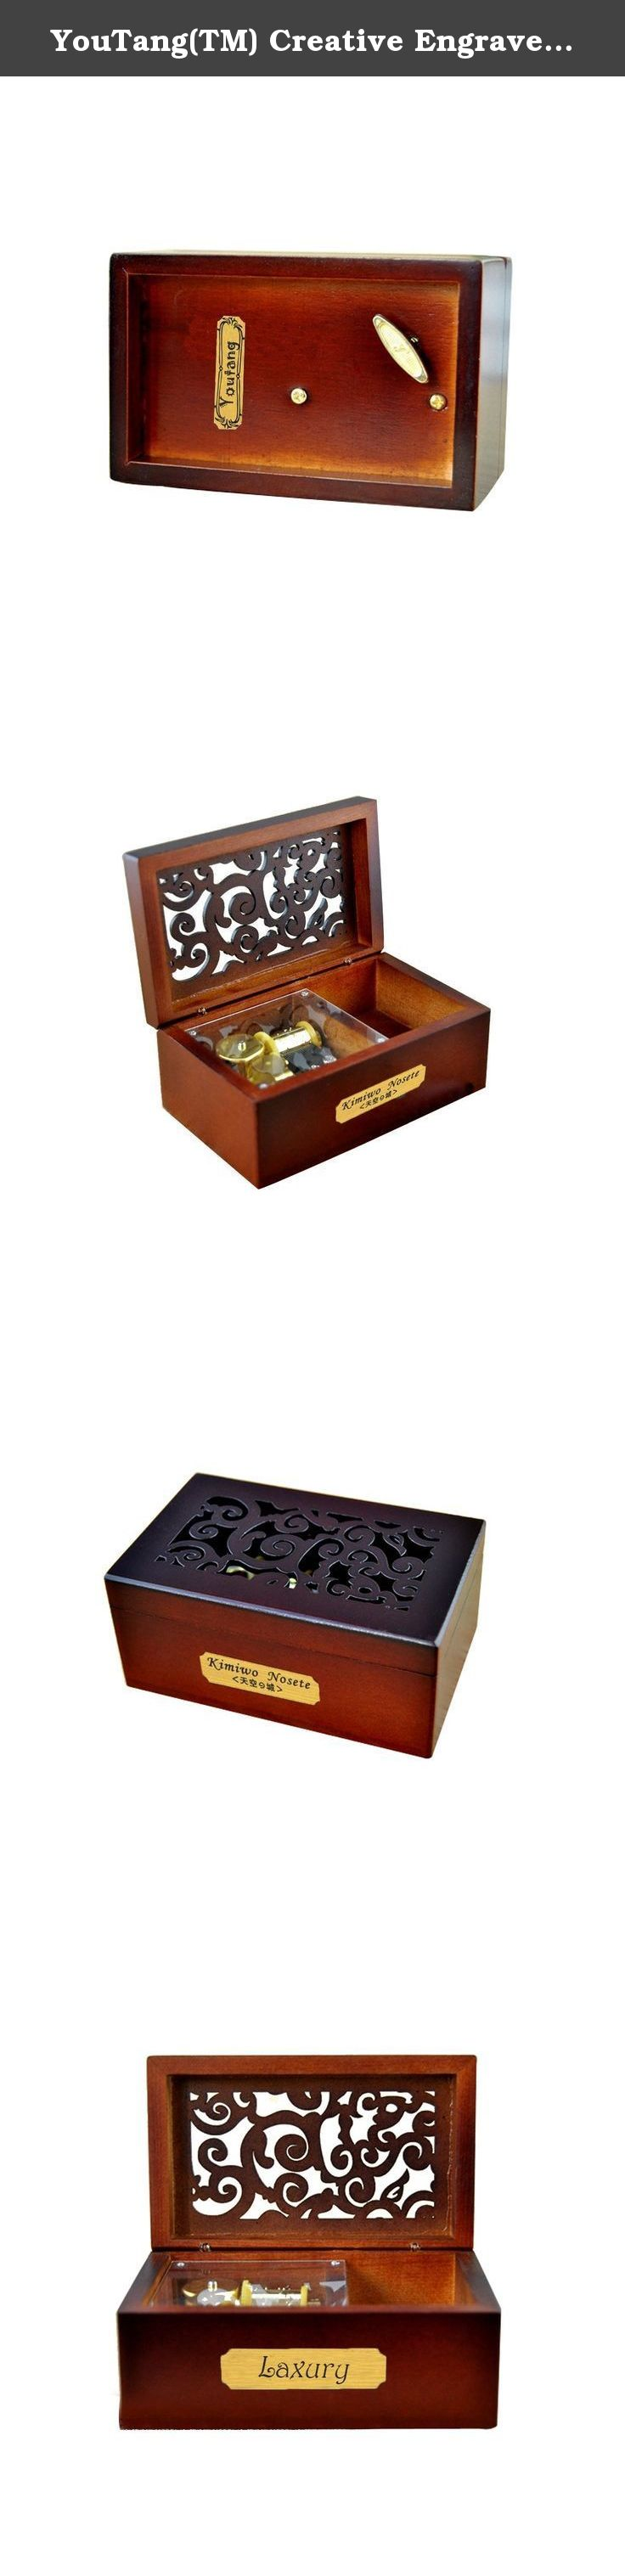 YouTang TM Creative Engraved Wooden 18 note Wind up Musical Box